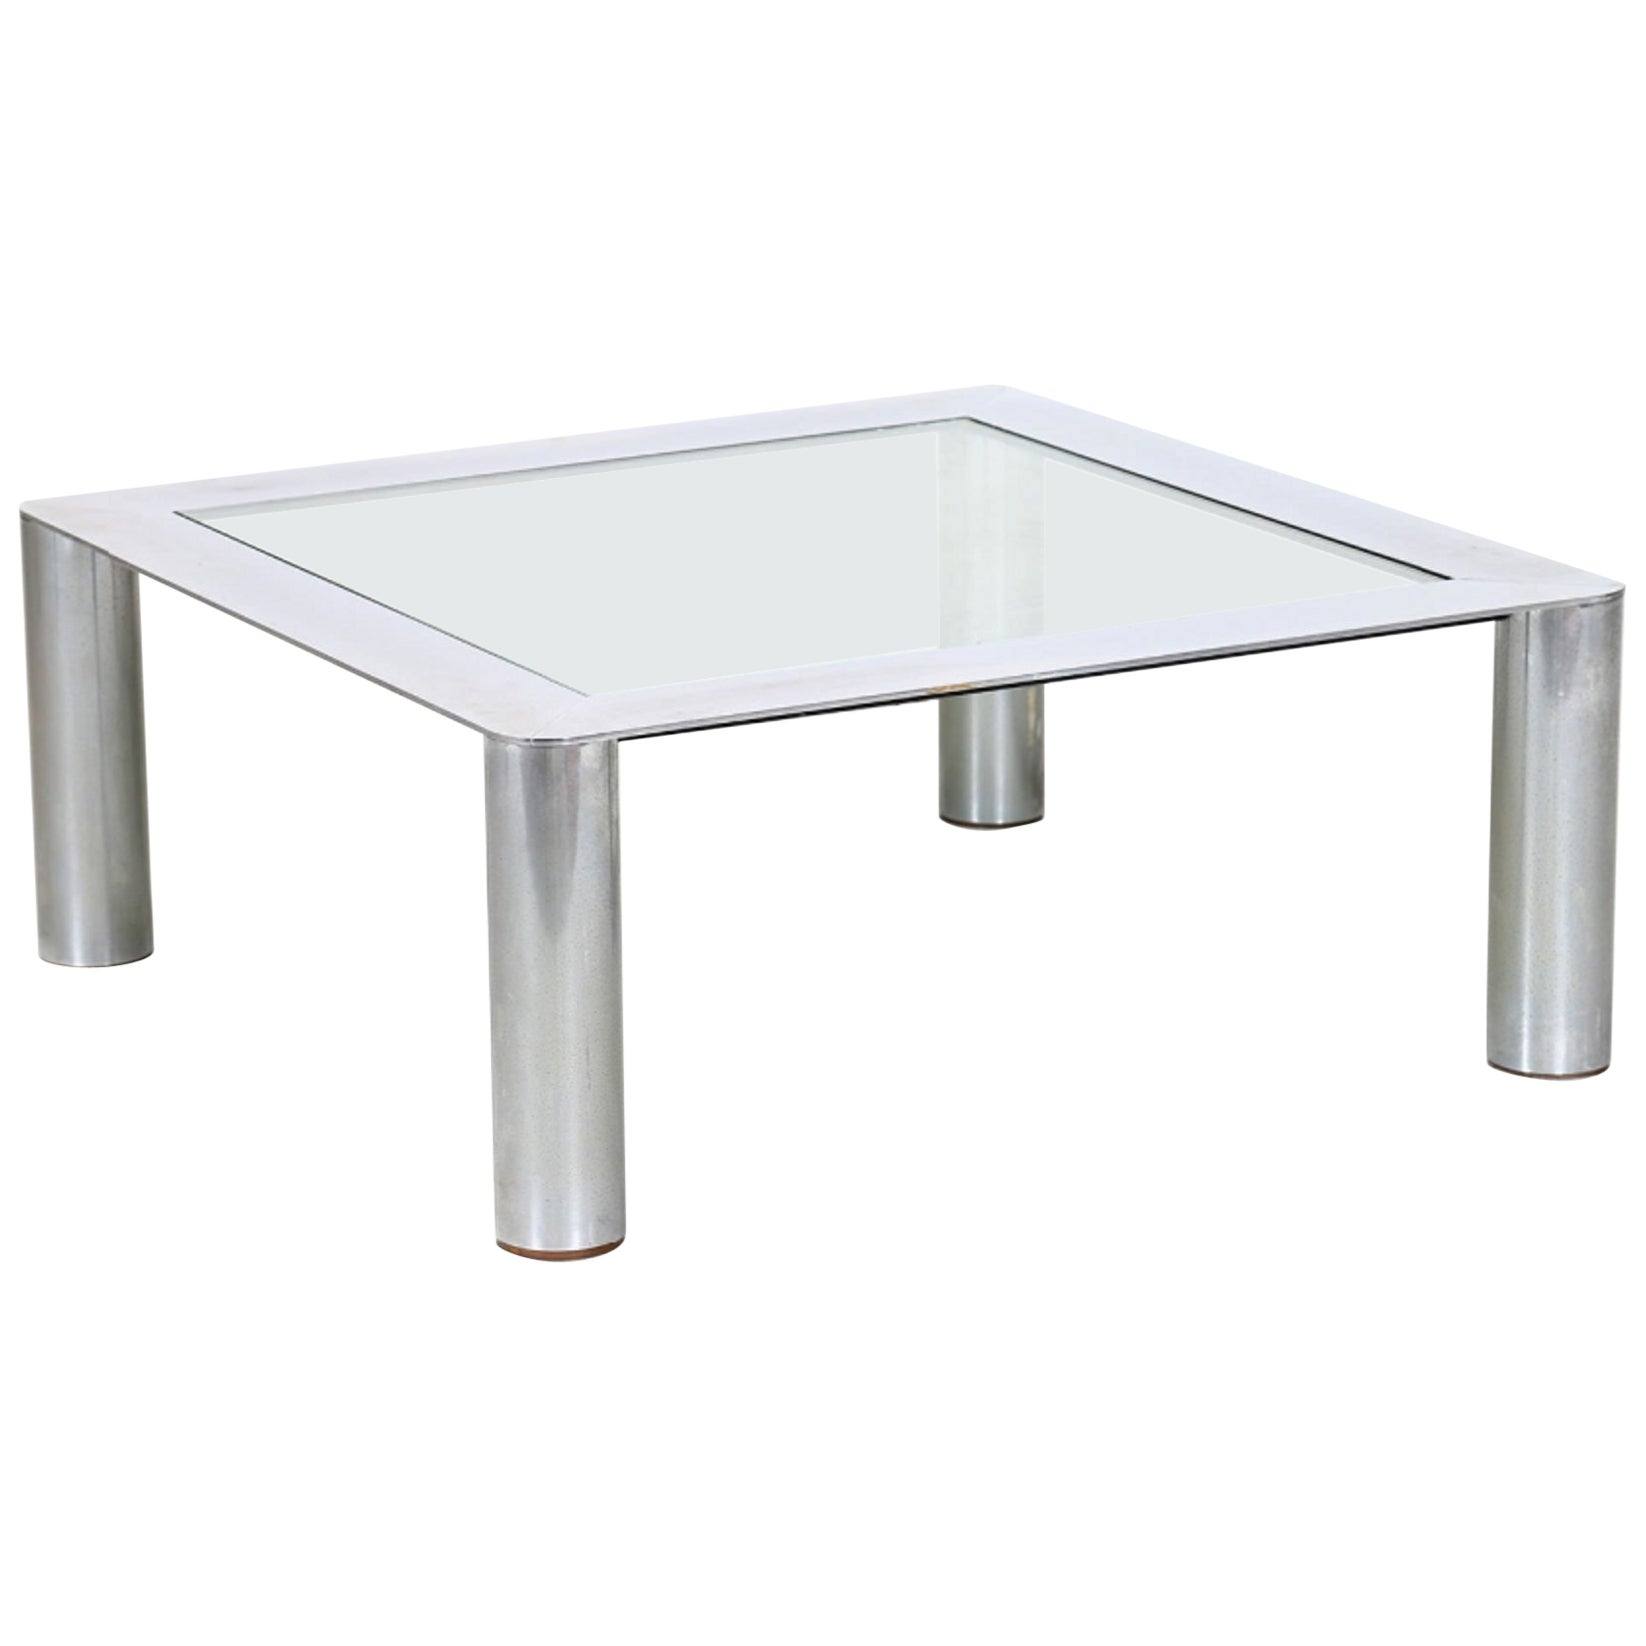 Vintage Cassina Coffee Table by Gianfranco Frattini, 1970s